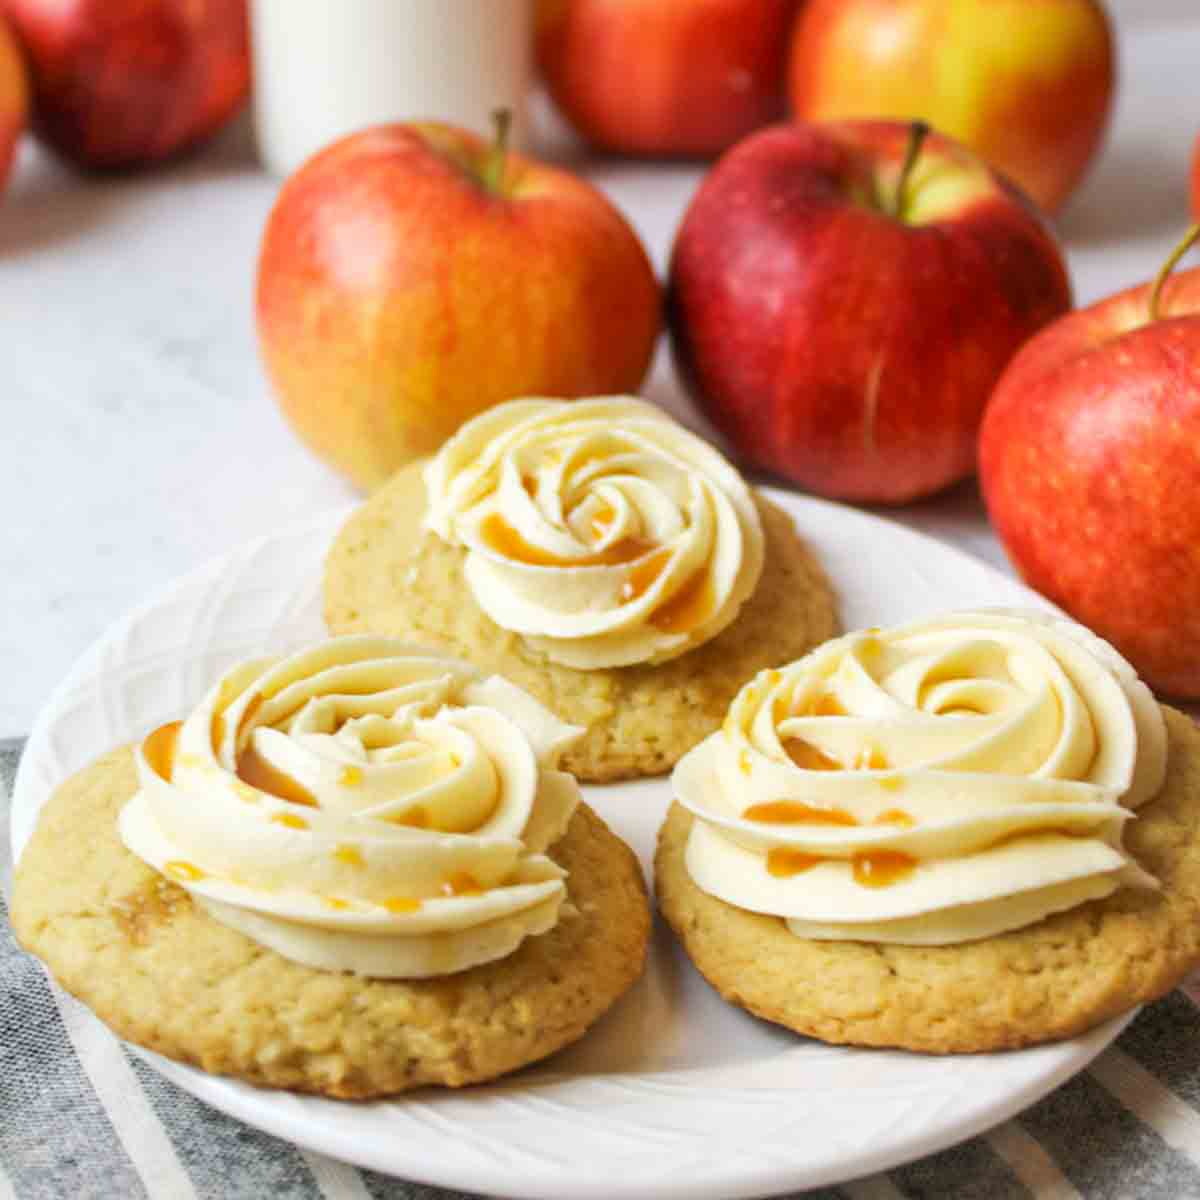 three caramel buttercream topped apple cider cookies next to fresh red apples on a white plate